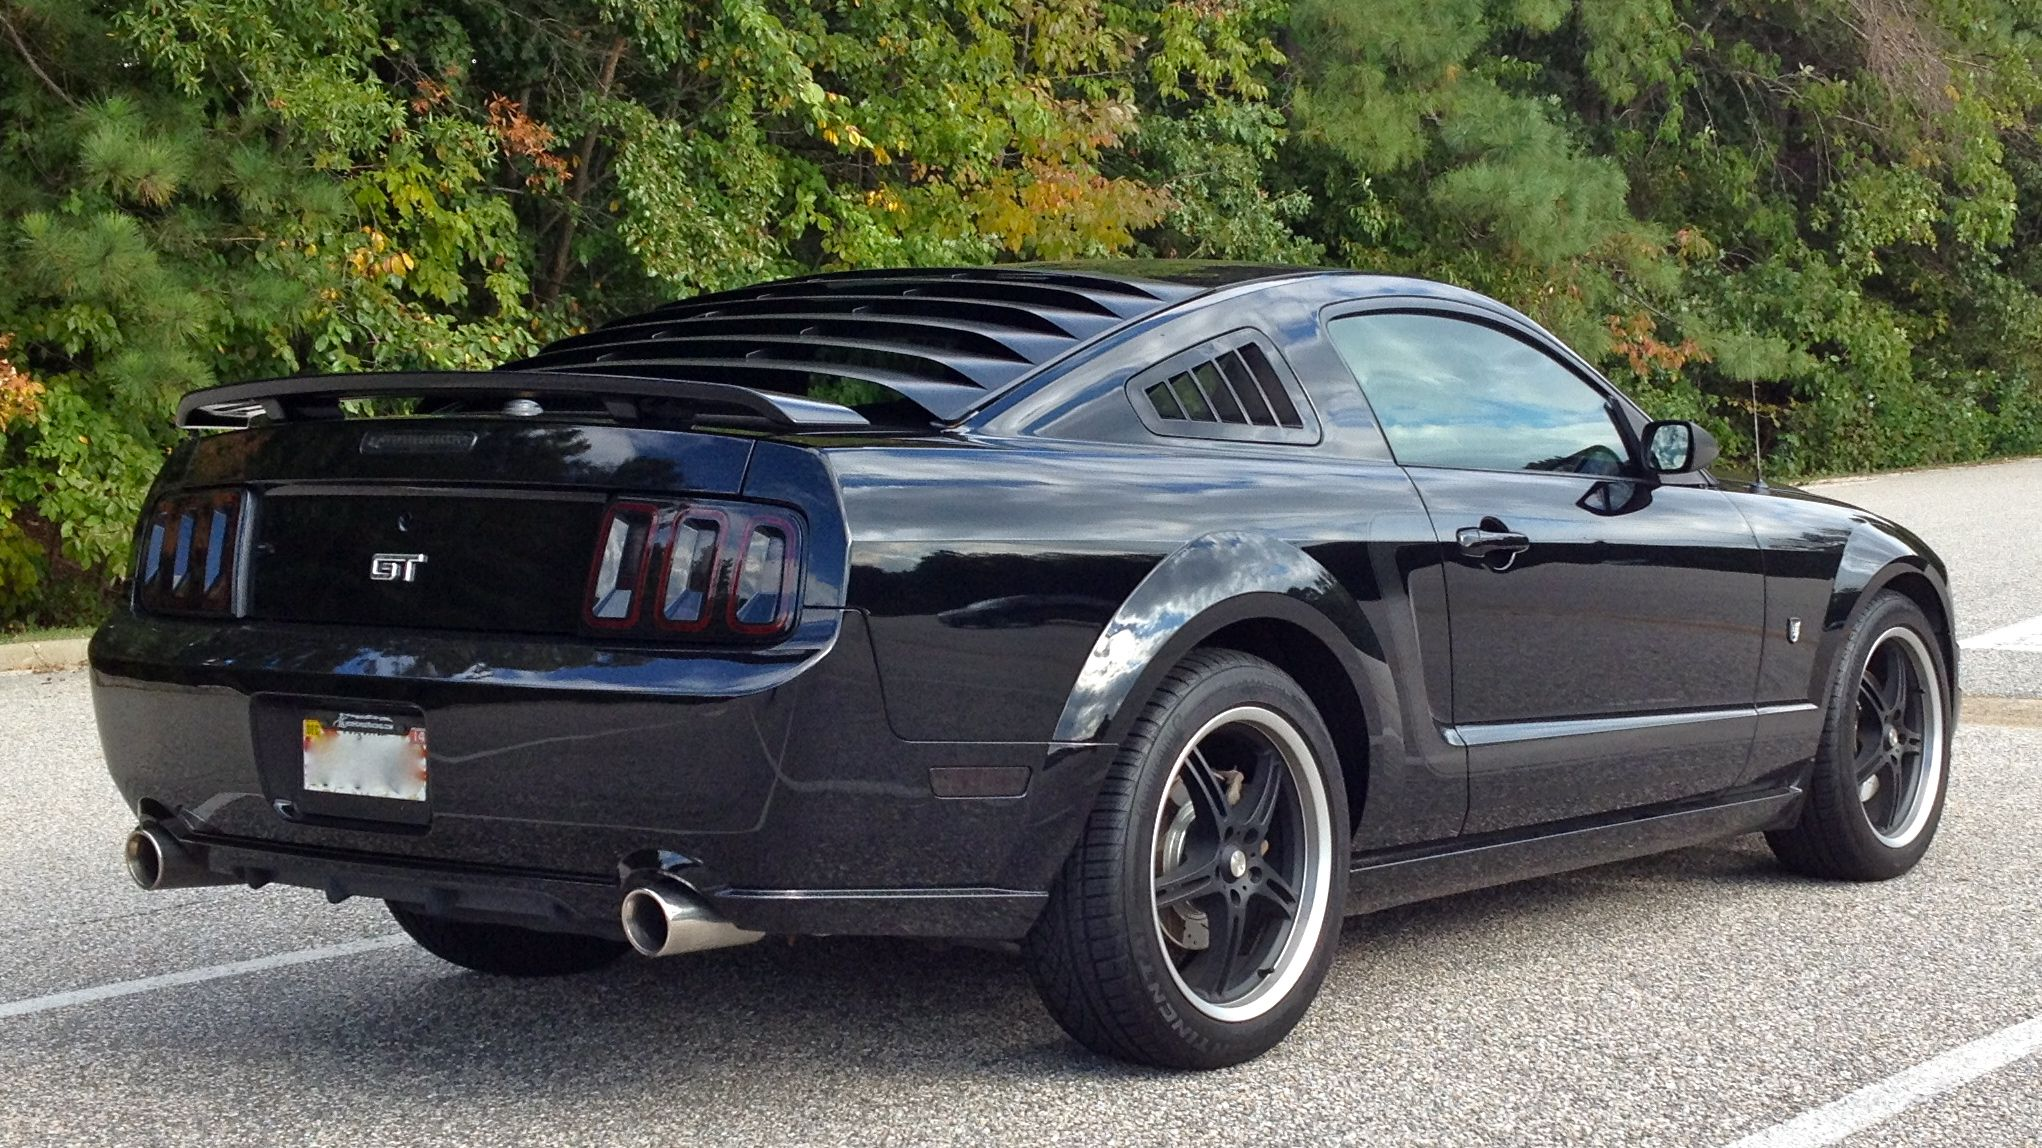 2007 MUSTANG GT WITH RAXIOM 2013 STYLE TAIL LIGHTS, RETRO ...